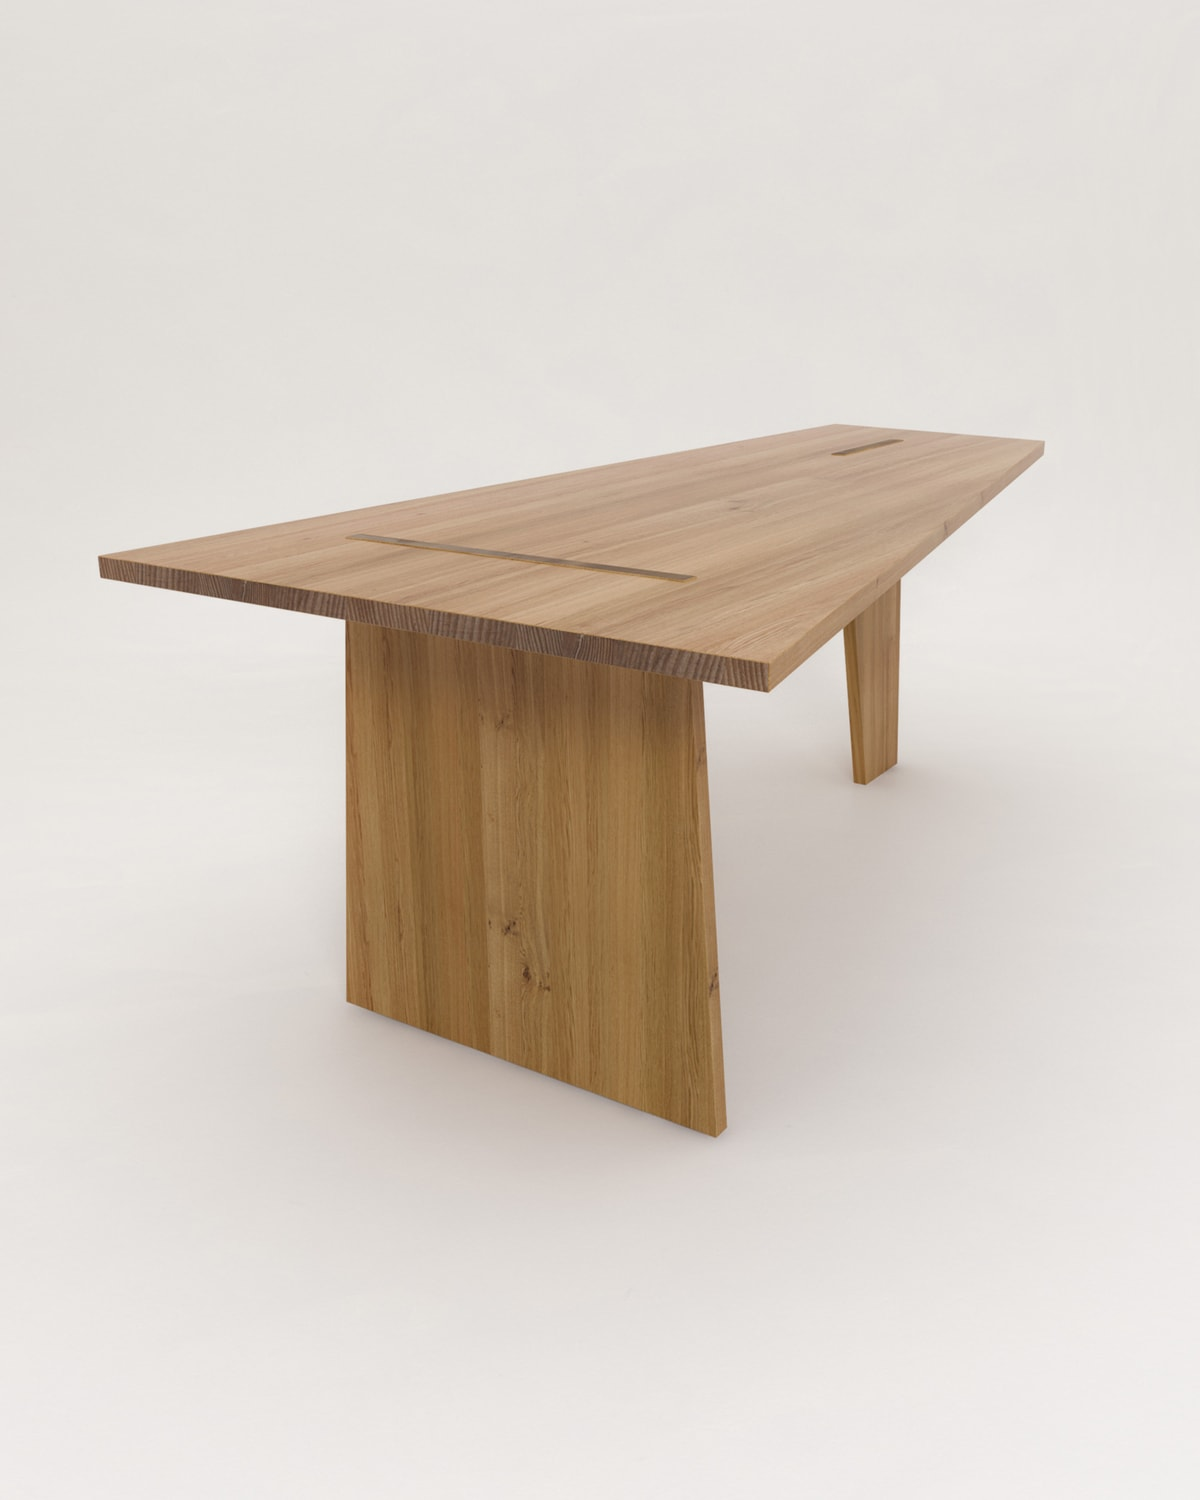 crooked_dining_table_02_1